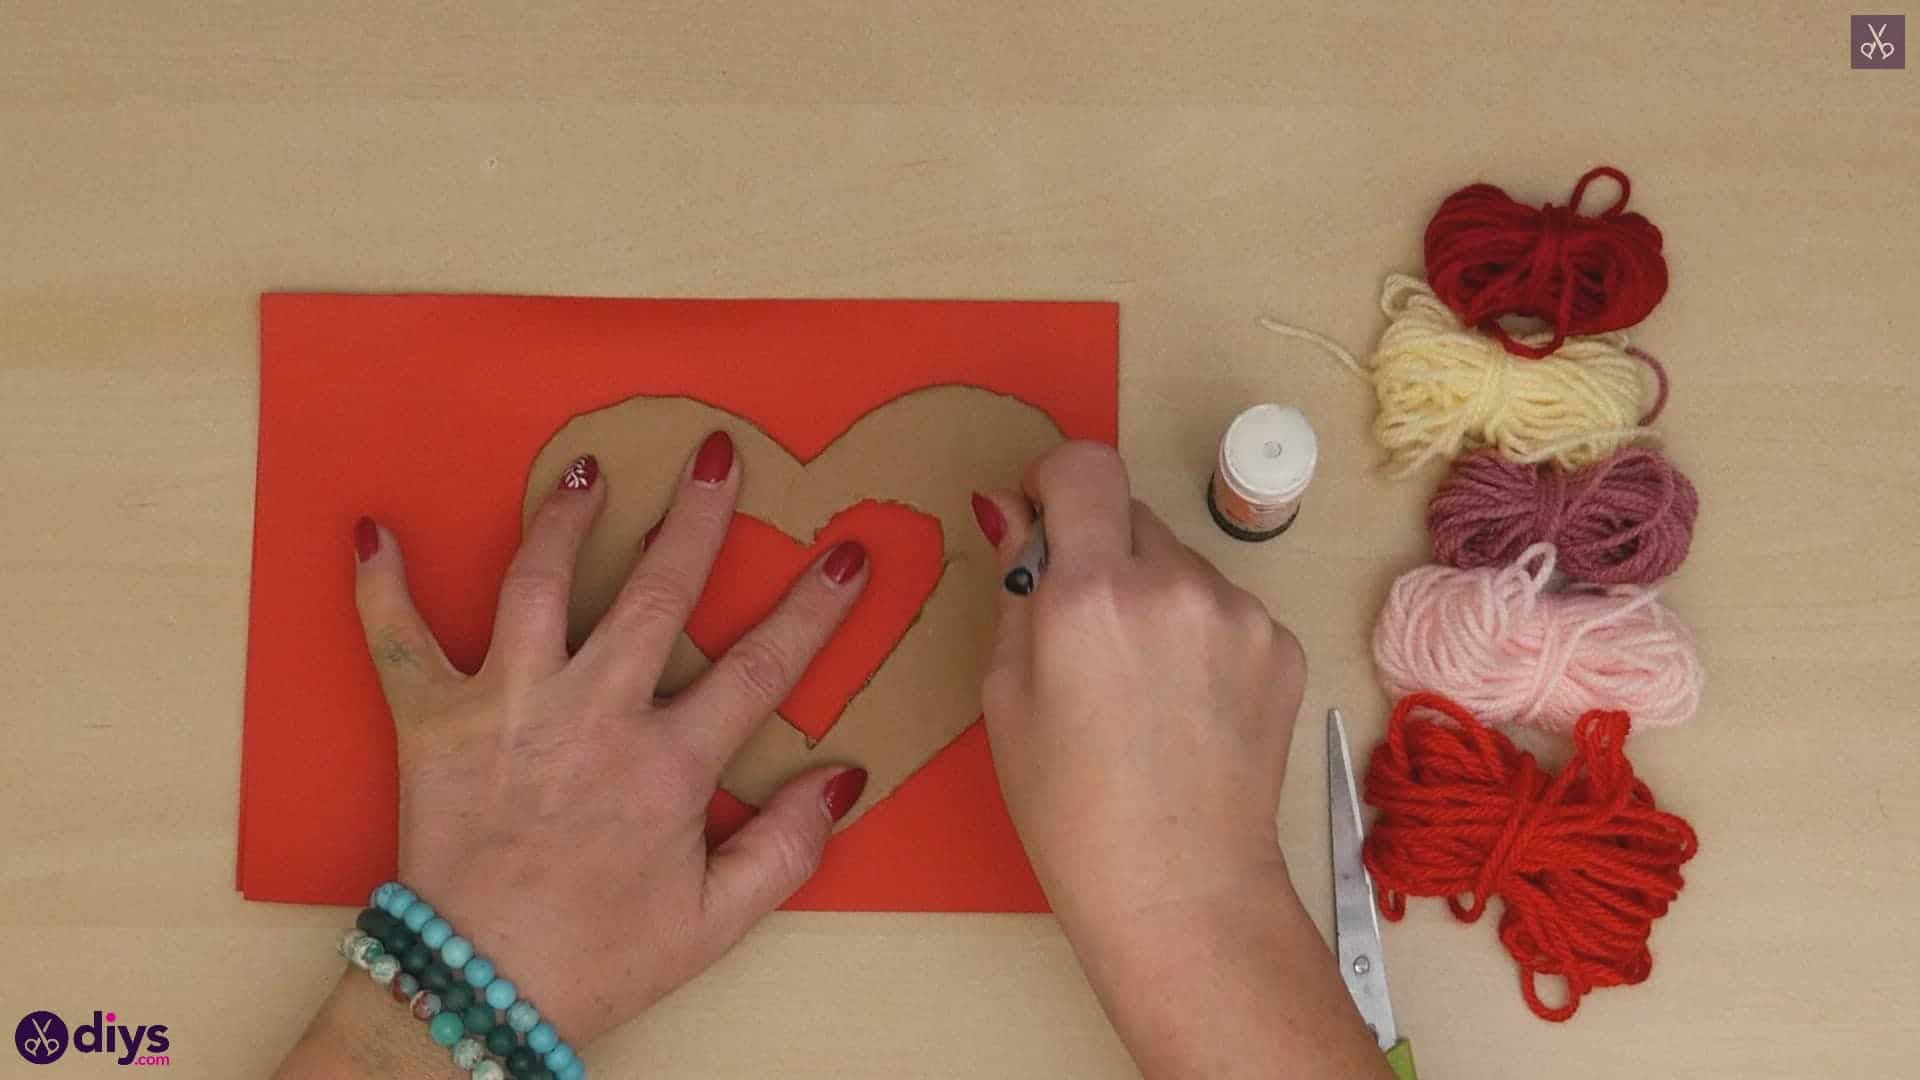 Diy yarn wrapped paper heart step 3